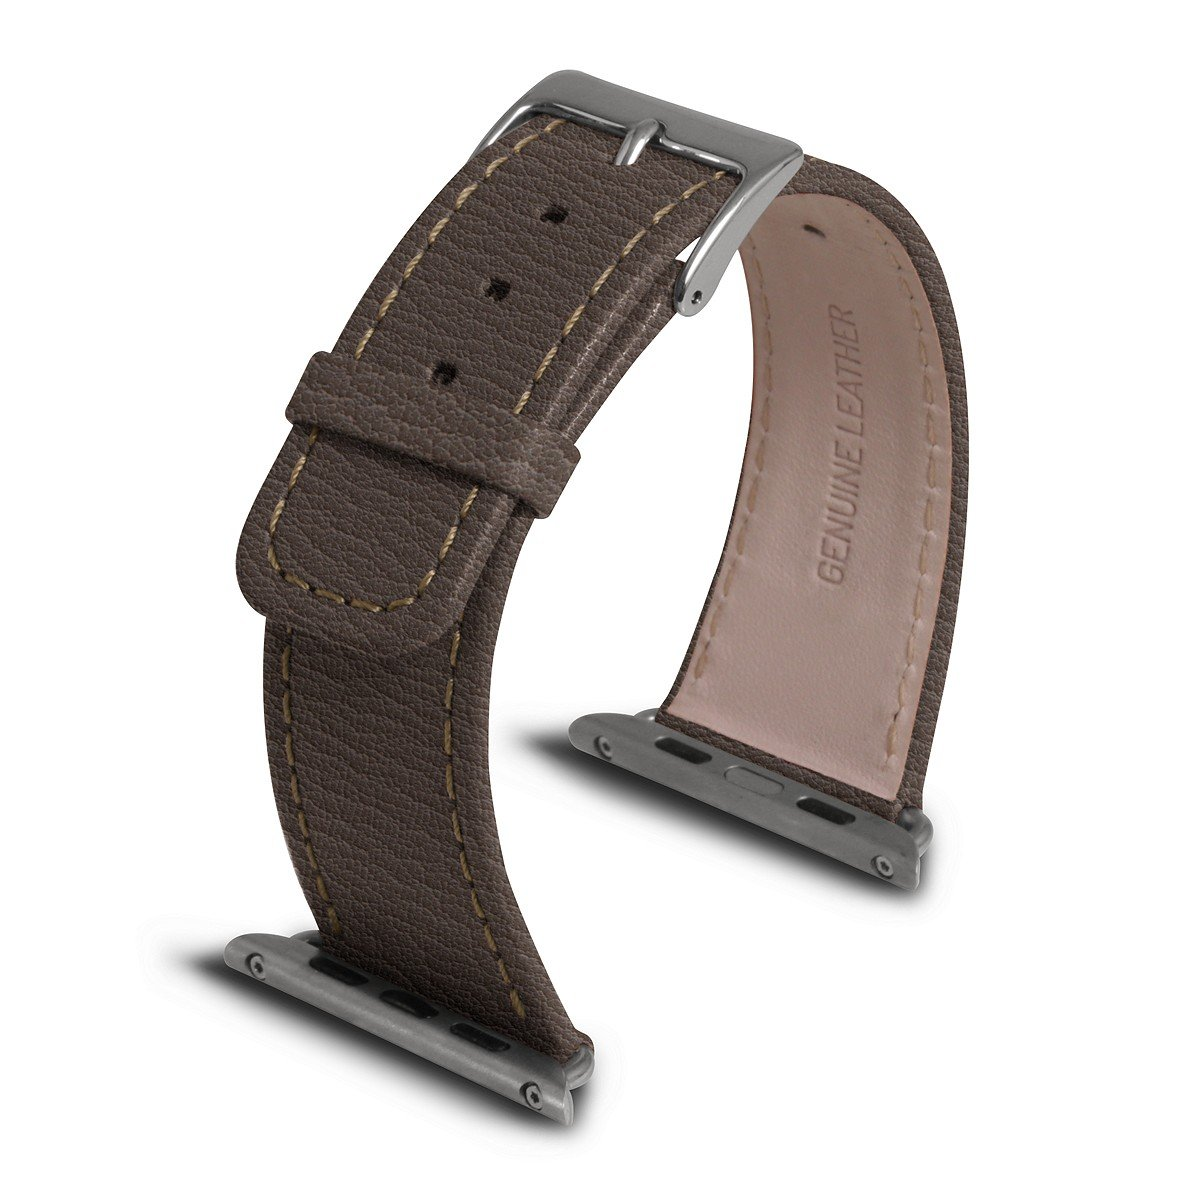 Lucrin - Apple Watch Band 42 mm - Dark Taupe - Goat Leather by Lucrin